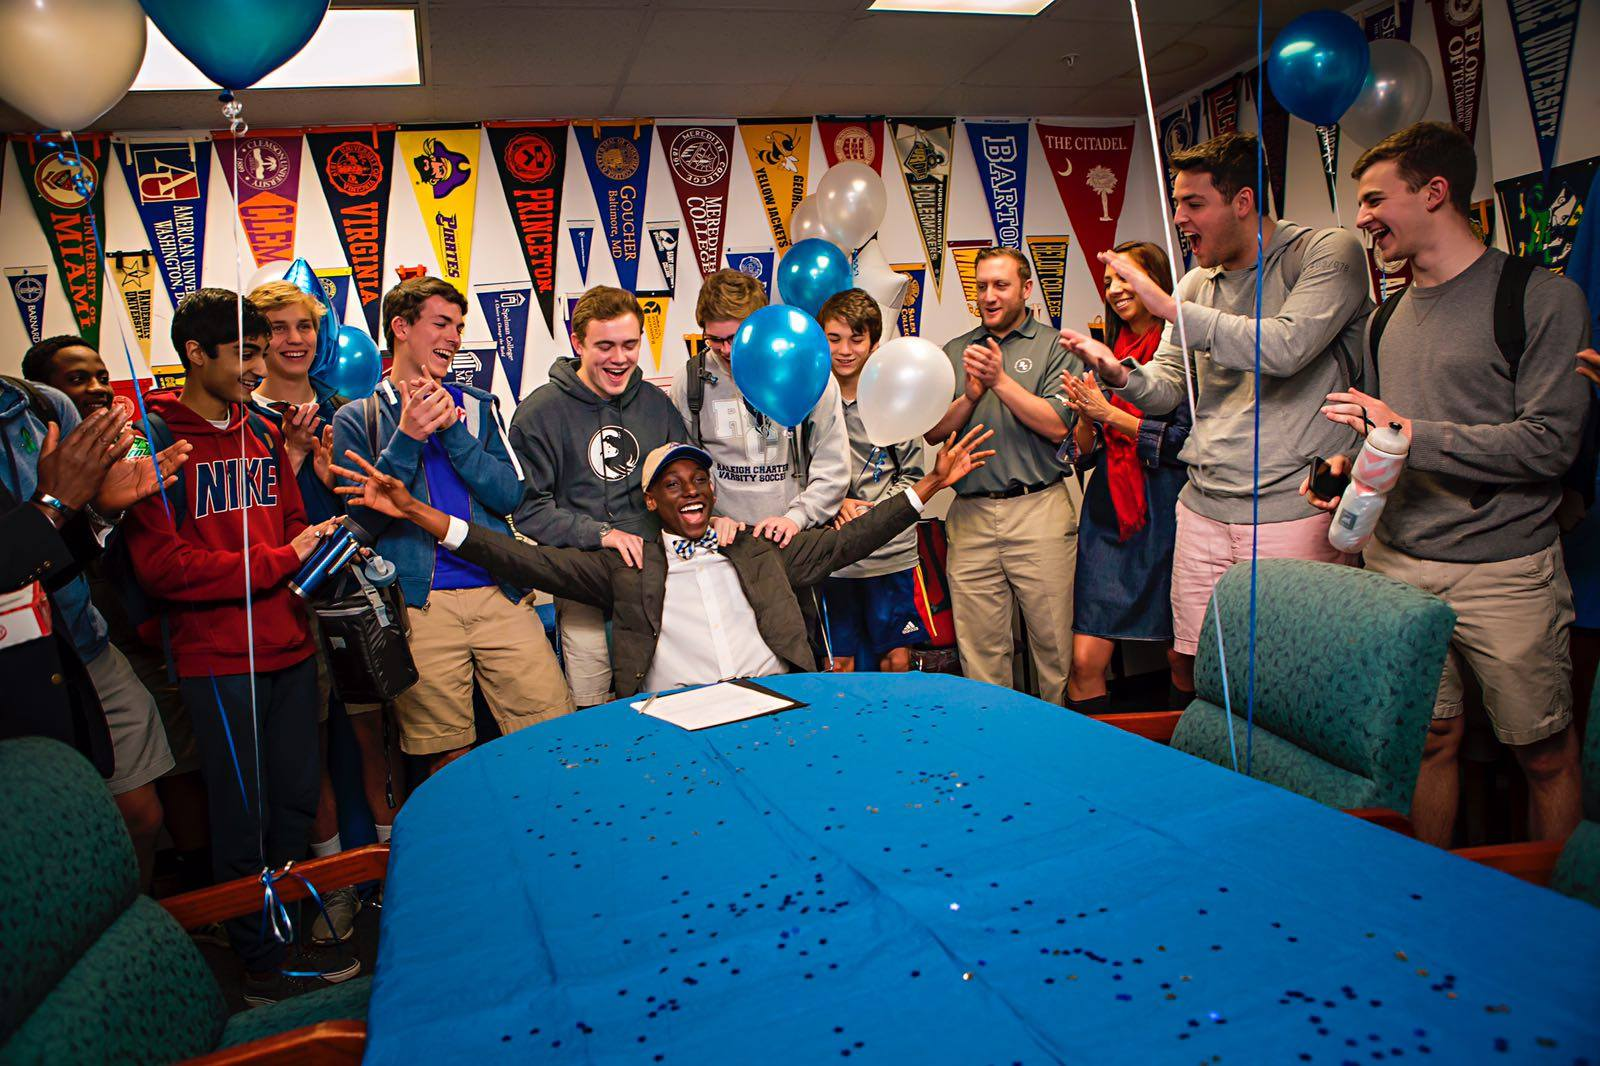 US Soccer phenomenon with Salone roots signs for University of North Carolina